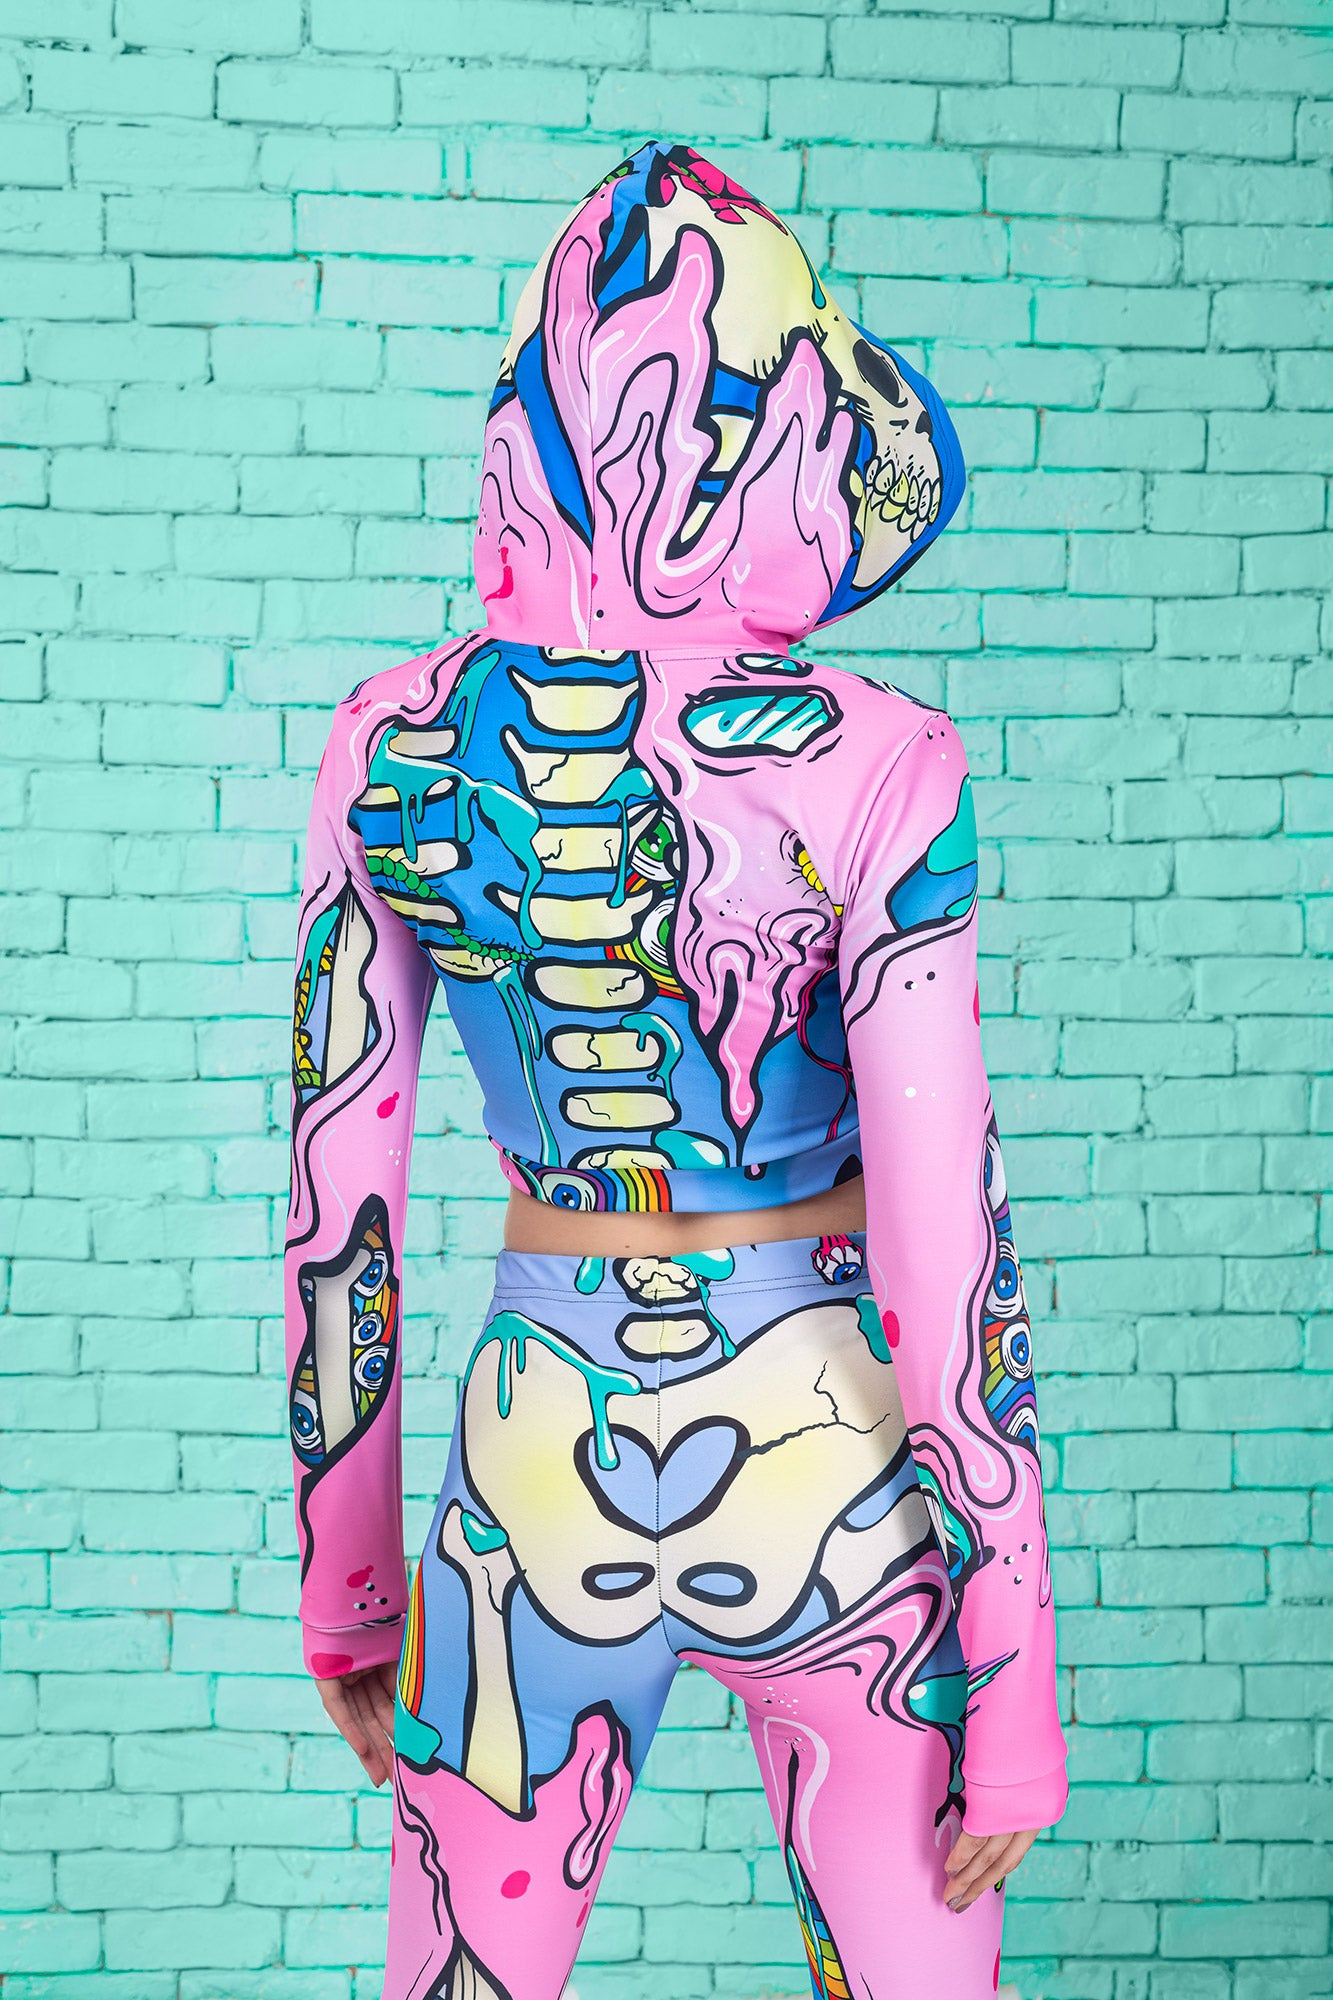 KAWAII POP ART SKELETON HOODED TOP TOP >> BADINKA